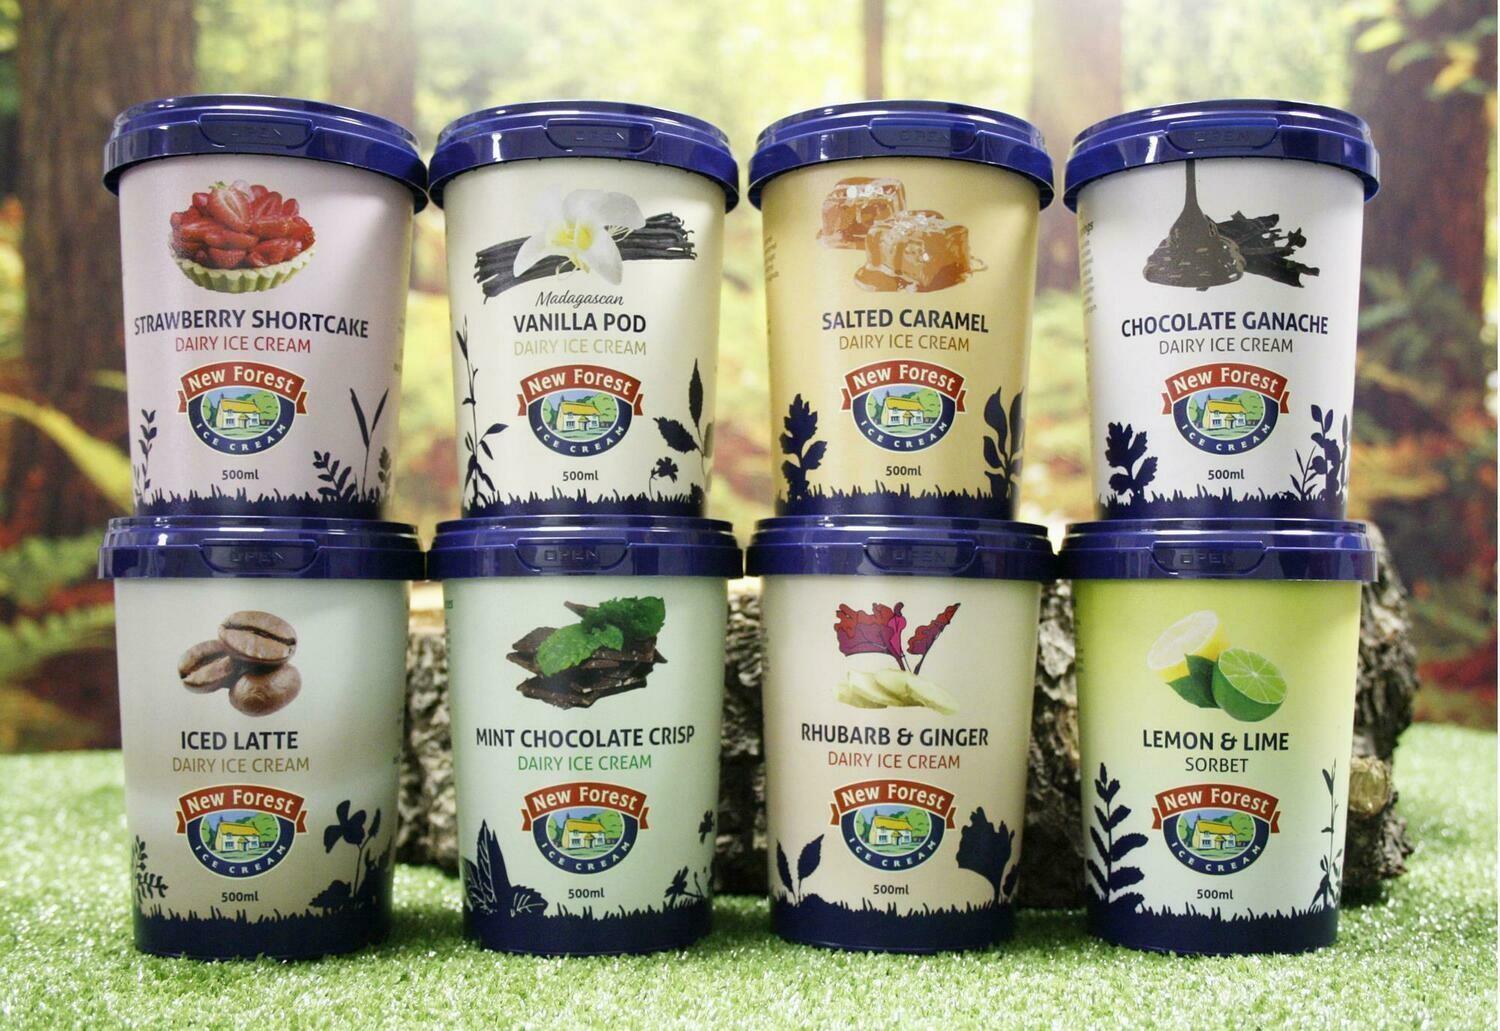 New Forest Ice-Cream 500ml